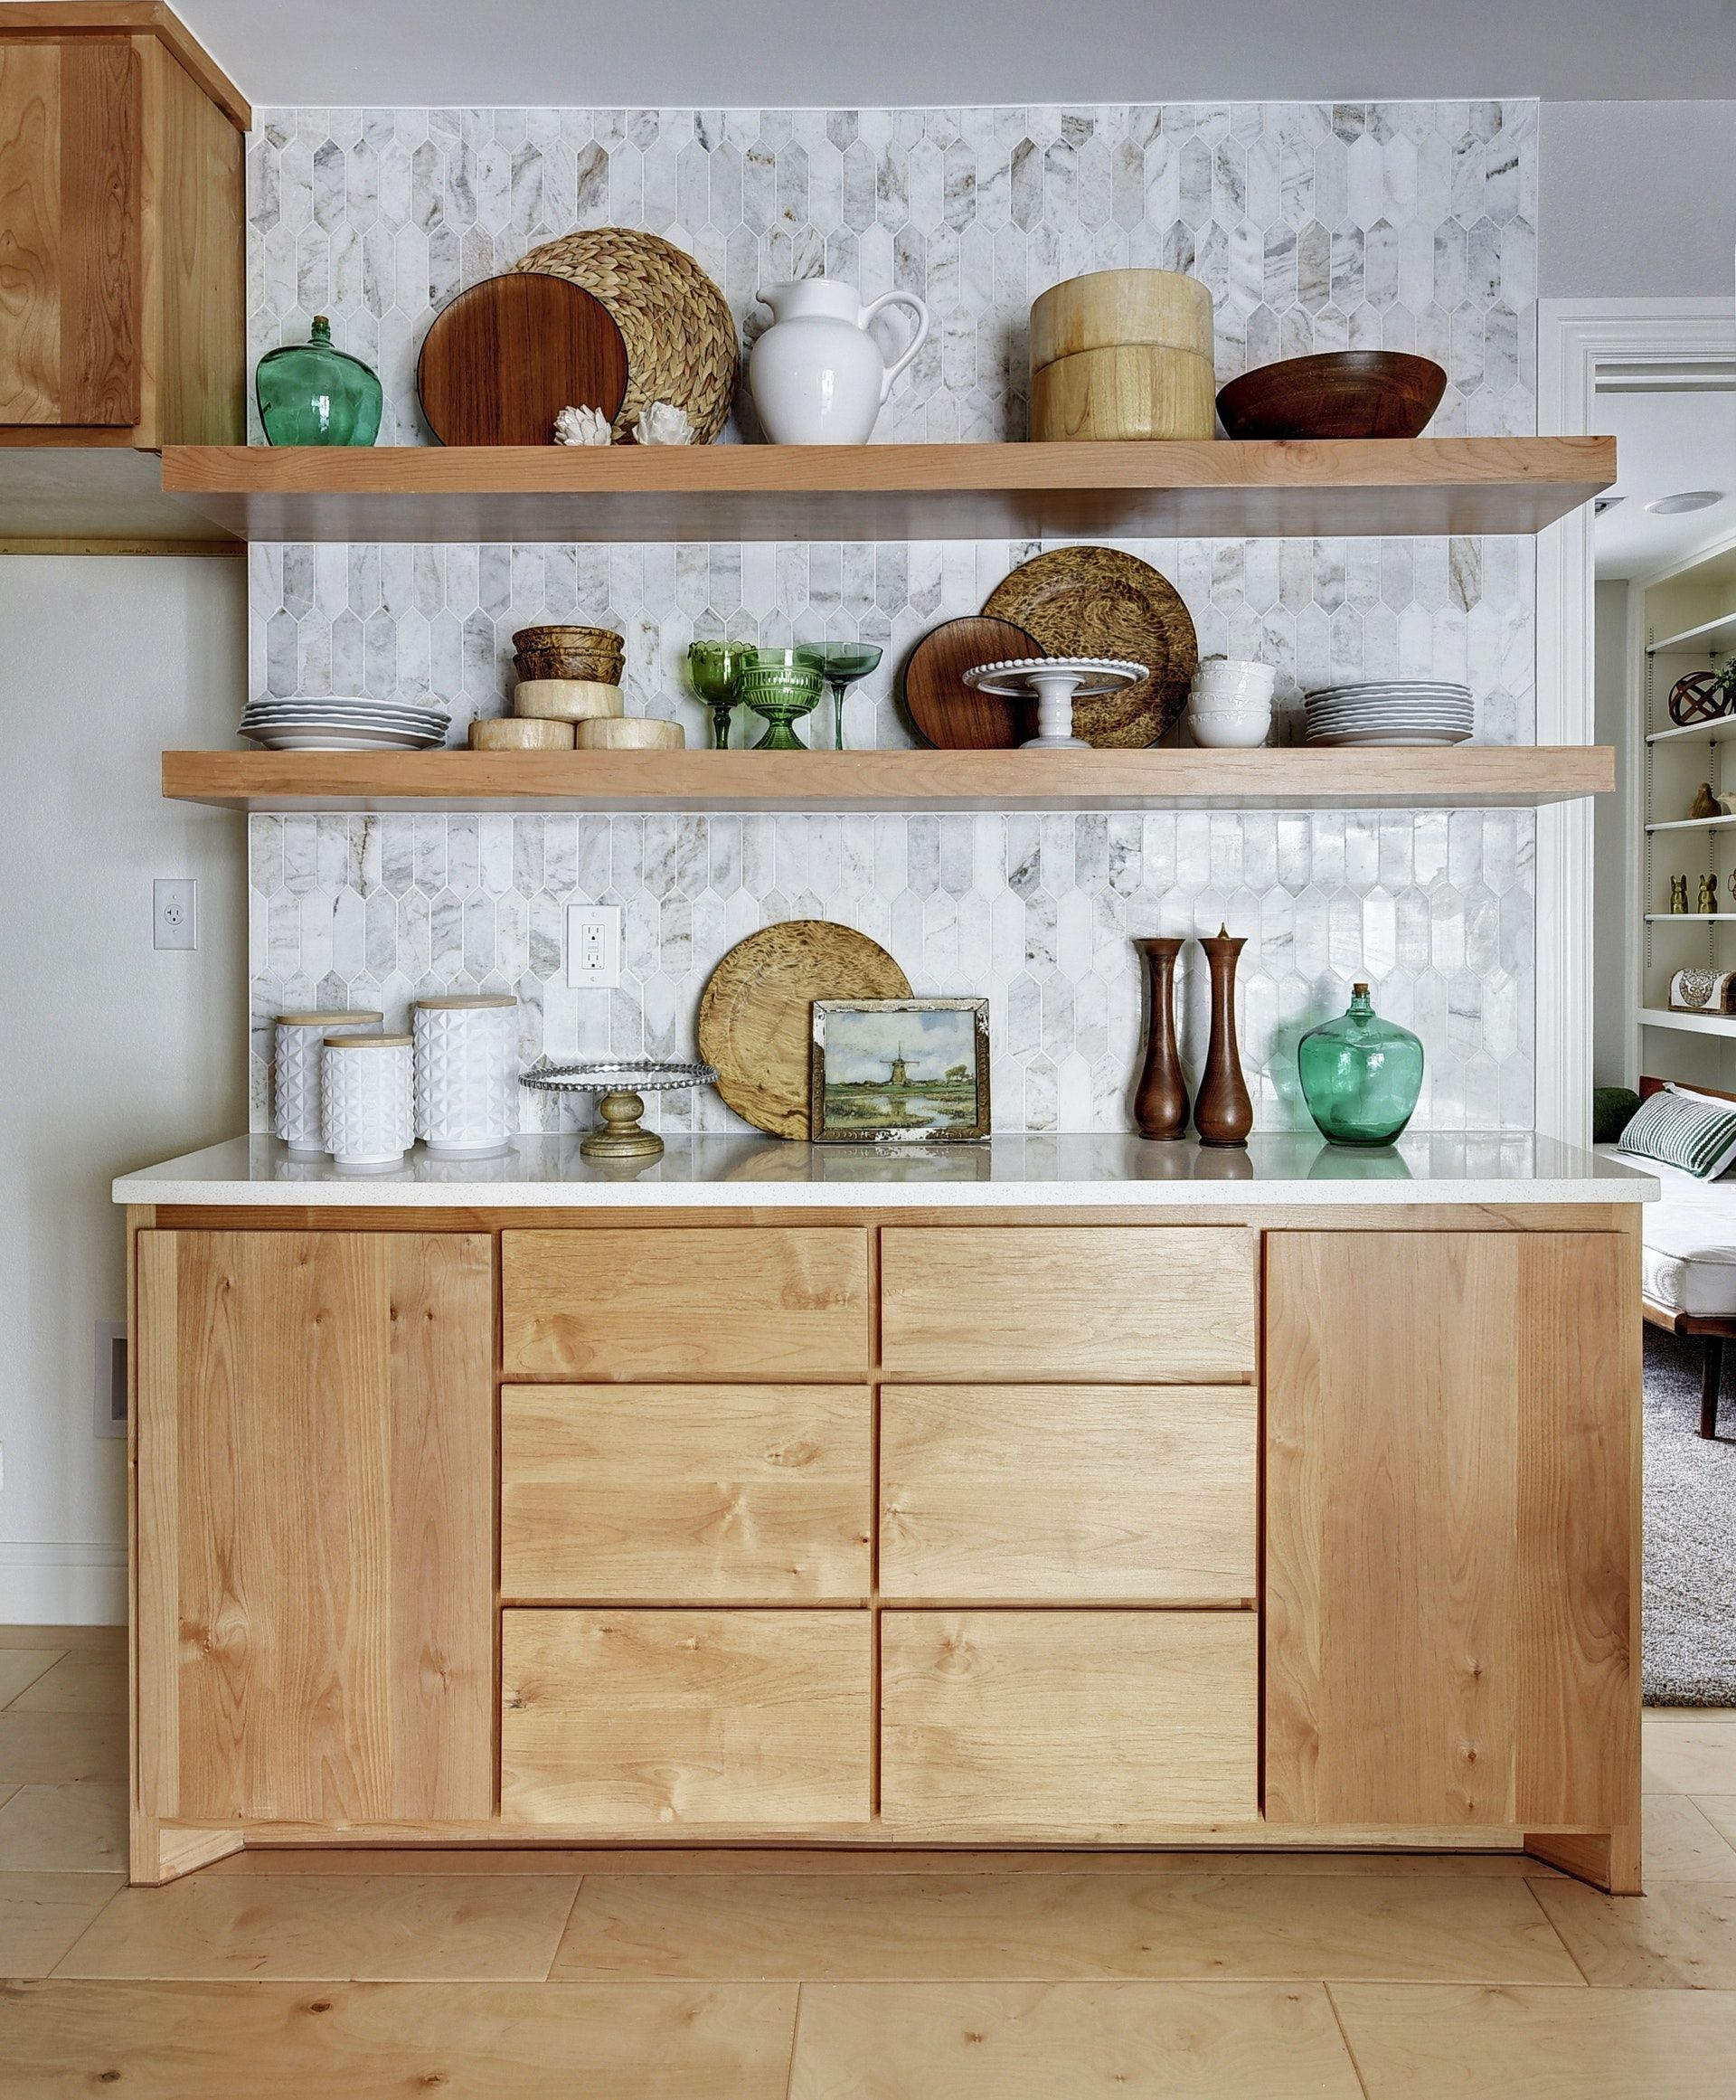 Open shelves pull out trash cabinet wood plates colored glass watercolor painting in kitchen white canisters marble elongated hexagon tile also